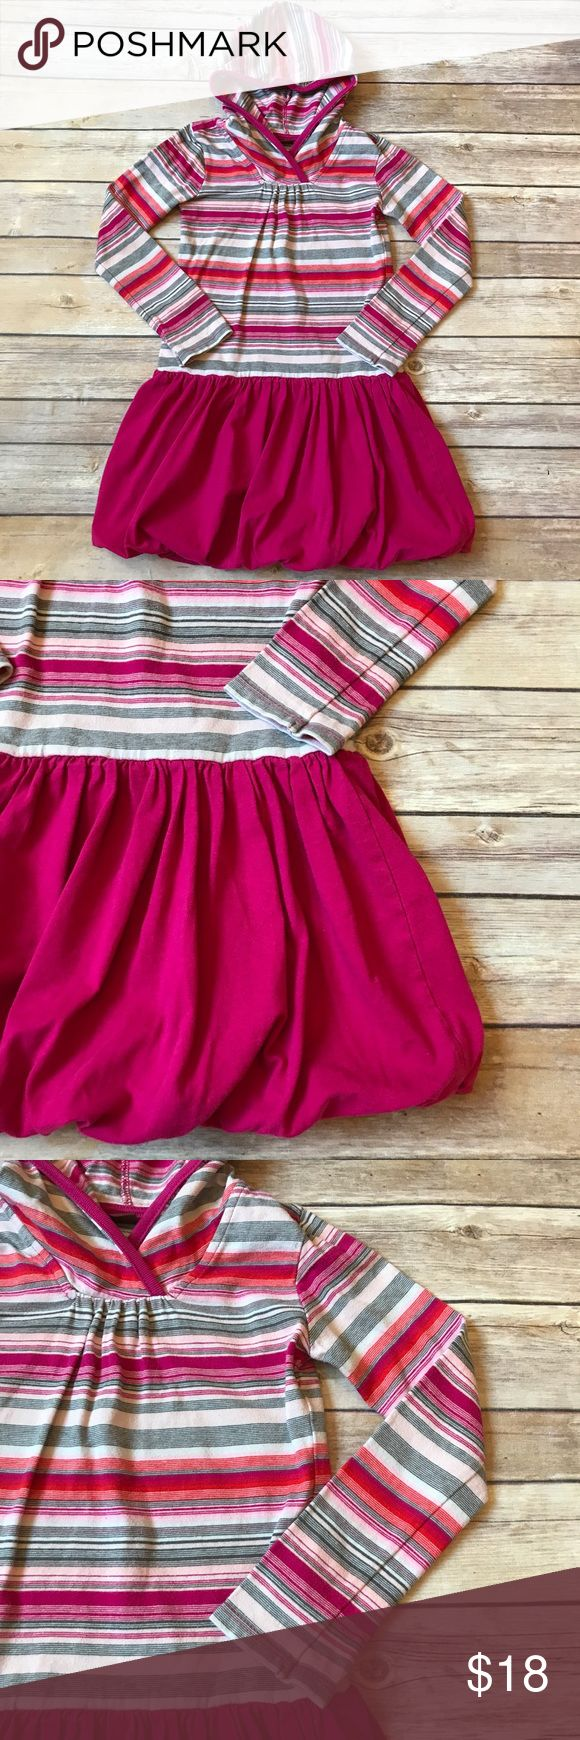 Tea Collection Size 5, Tea Collection dress. Striped dress with bright pink bubble skirt. Striped hood. Long sleeves. 100% cotton. No stains or flaws. Very good condition. Tea Collection Dresses